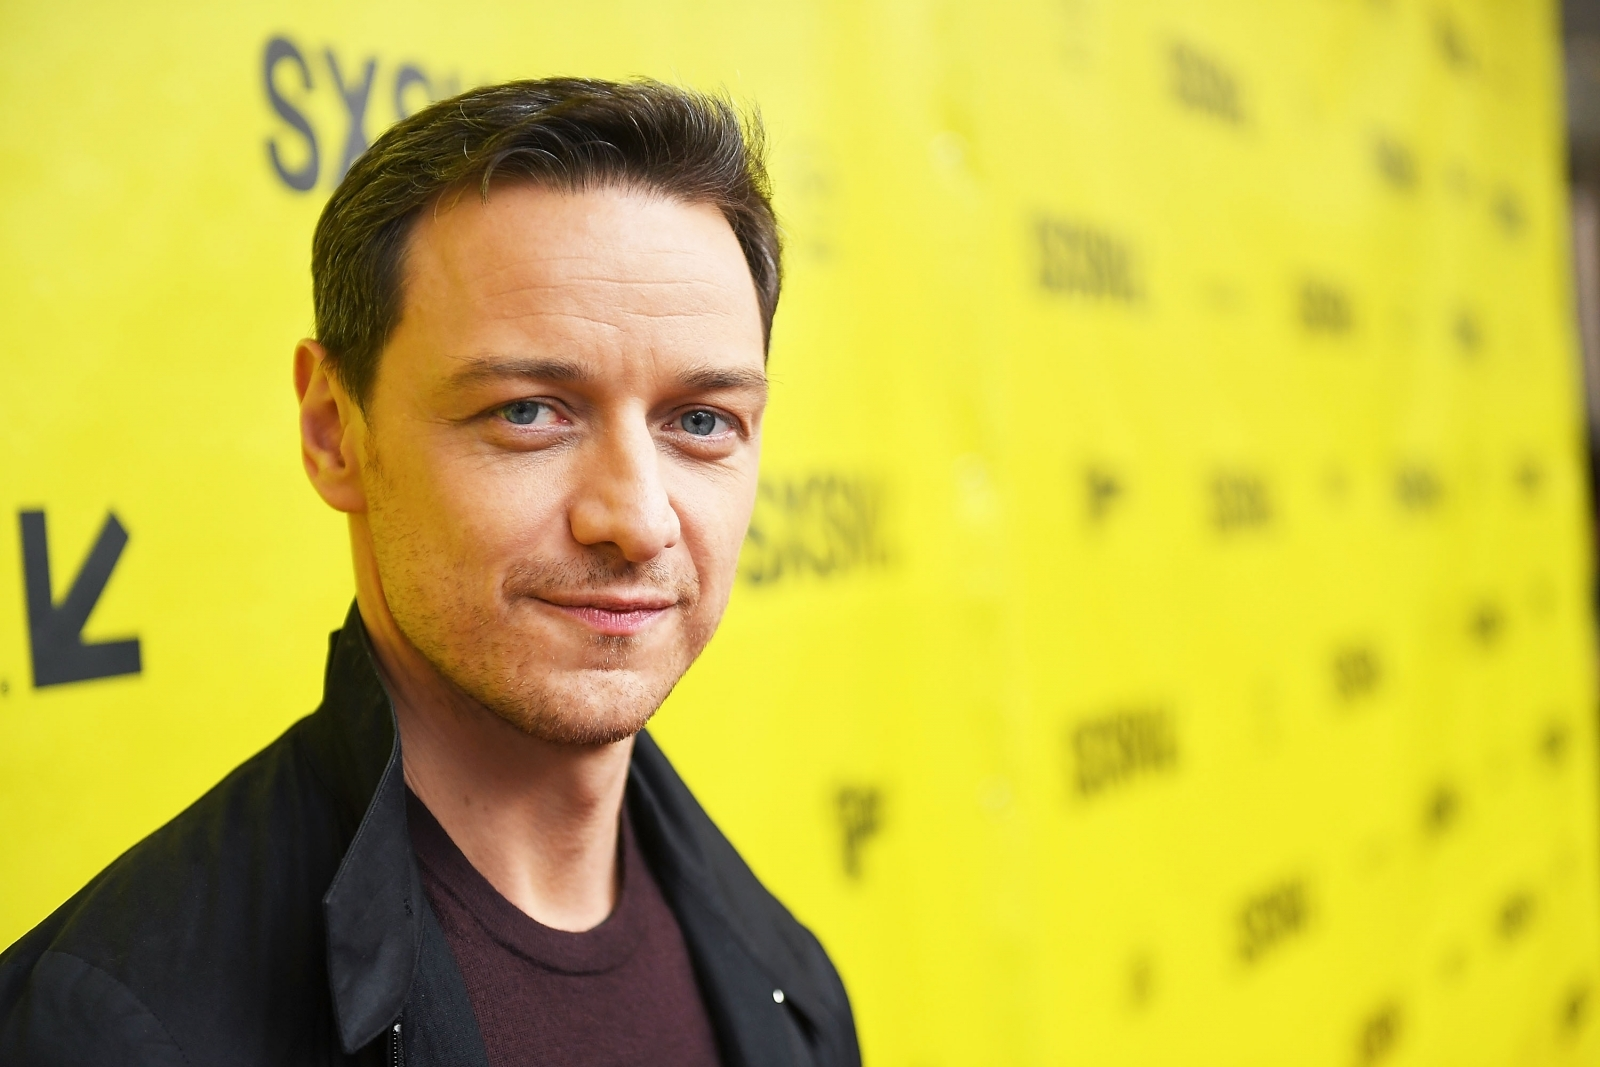 Professor X actor James McAvoy reveals Justin Trudeau's X-Men mutant power